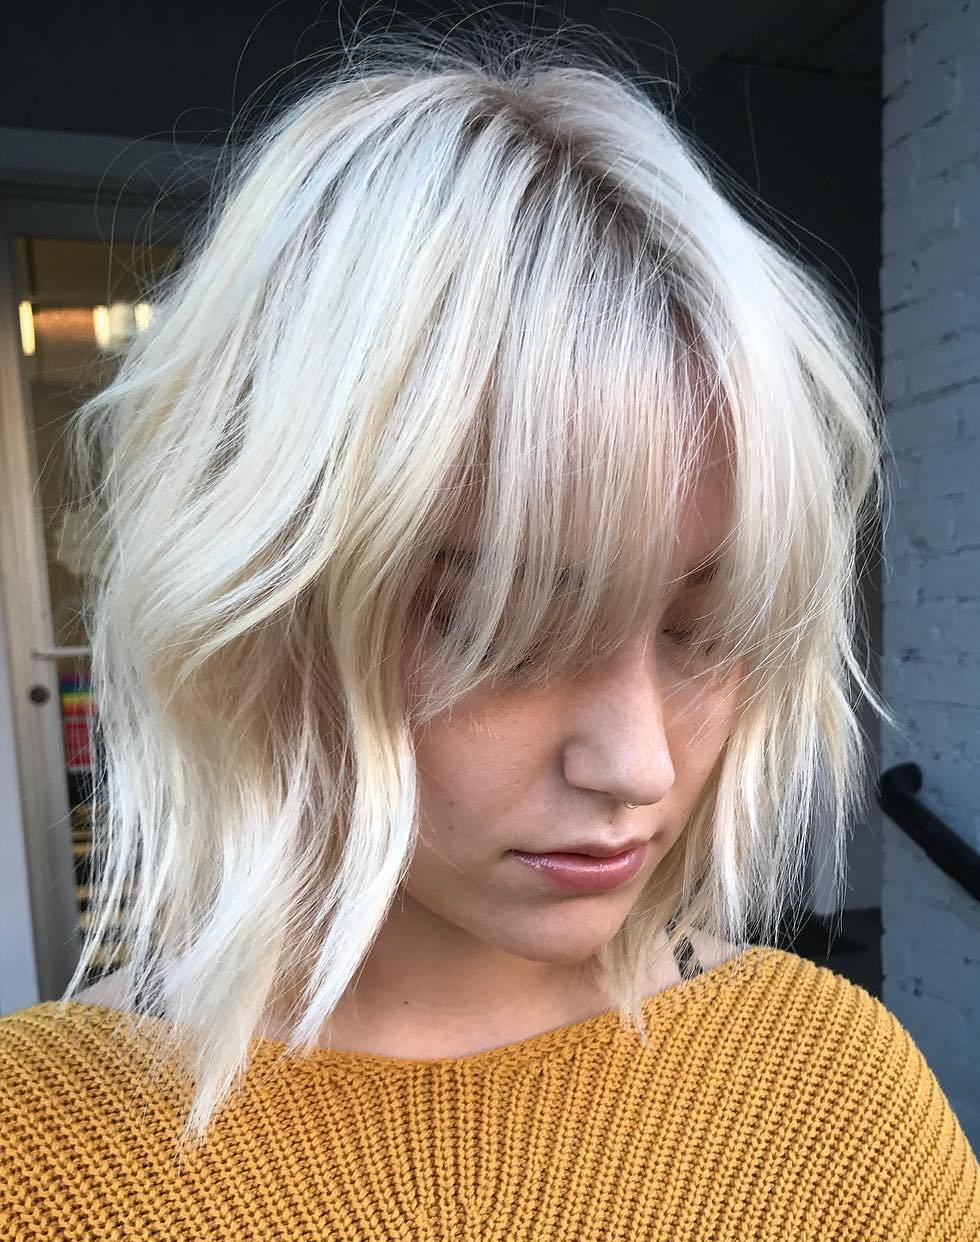 Shaggy White Blonde Bob with Bangs for Fine Hair